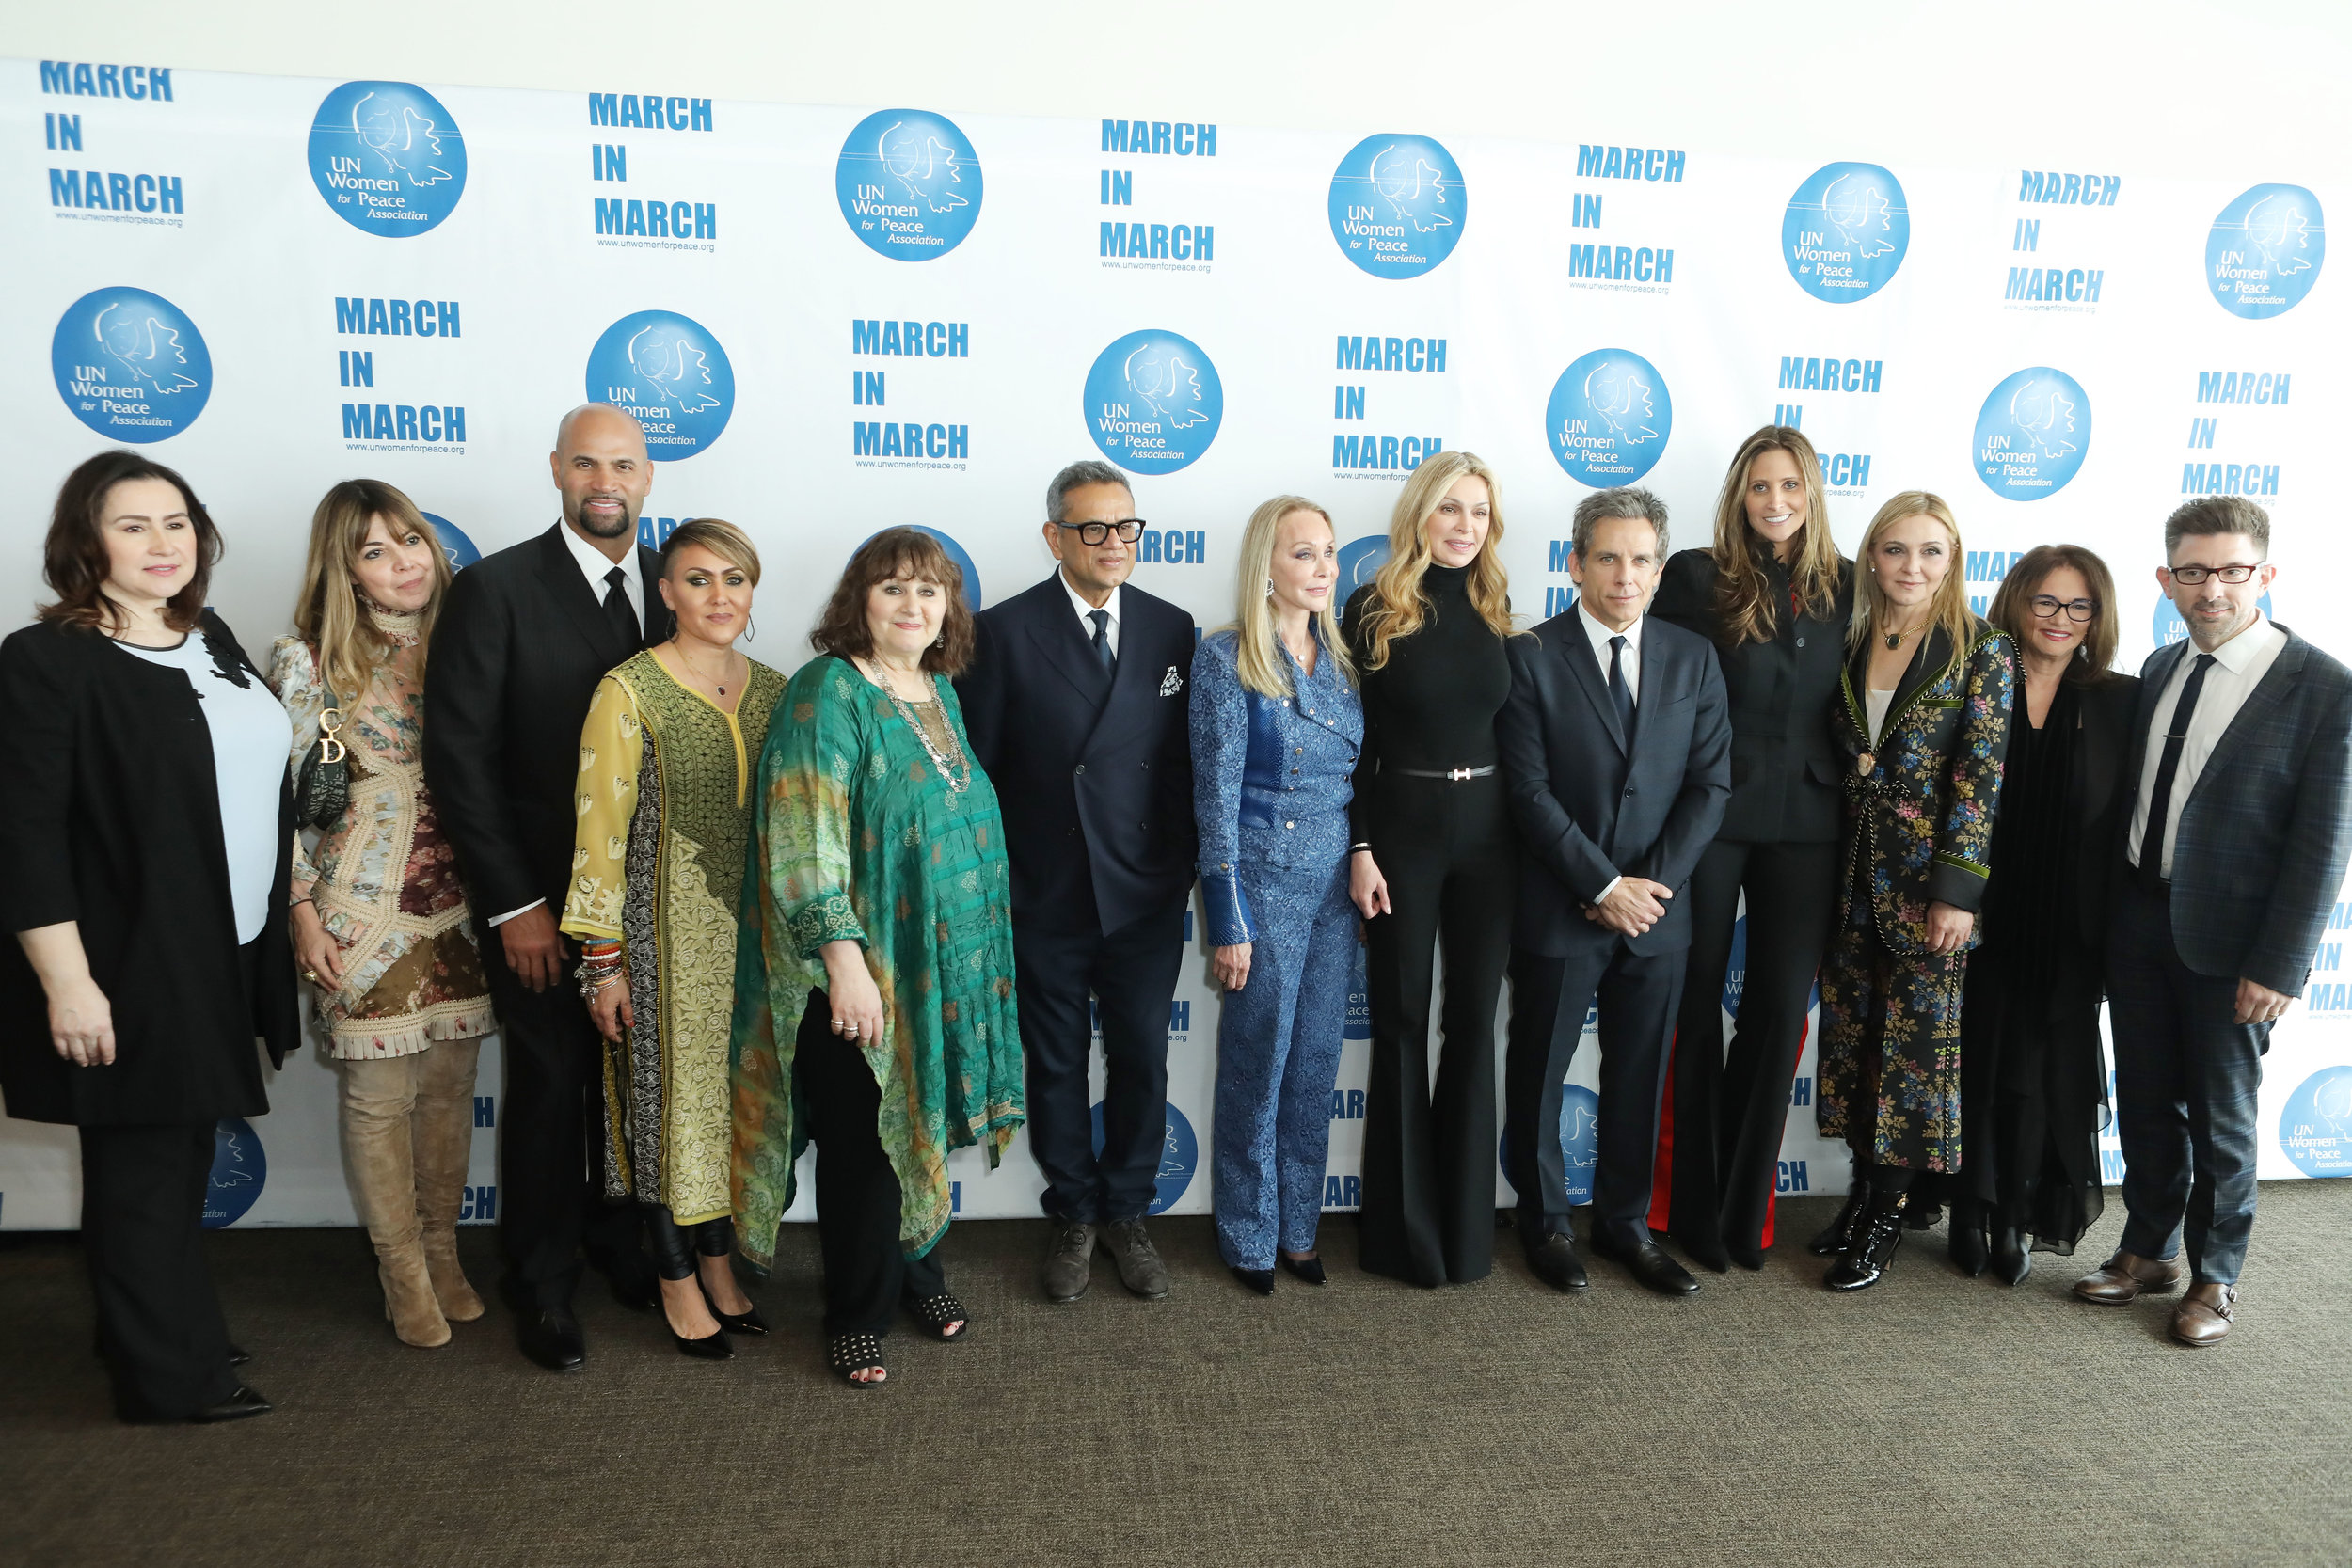 UNWFPA board member Valbona Neritani, UNWFPA Vice President Rema Dupont, Albert and Deidre Pujols, Leslee Udwin, Naeem Khan, UNWFPA President Barbara Winston, Sheikha Rima Al-Sabah, Ben Stiller, UNWFPA Board Member Stephanie Winston Wolkoff, UNWFPA Treasurer Michal Grayevsky, Dr. Robin Stern and Dr. Marc Brackett at the 2019 Annual Awards Luncheon